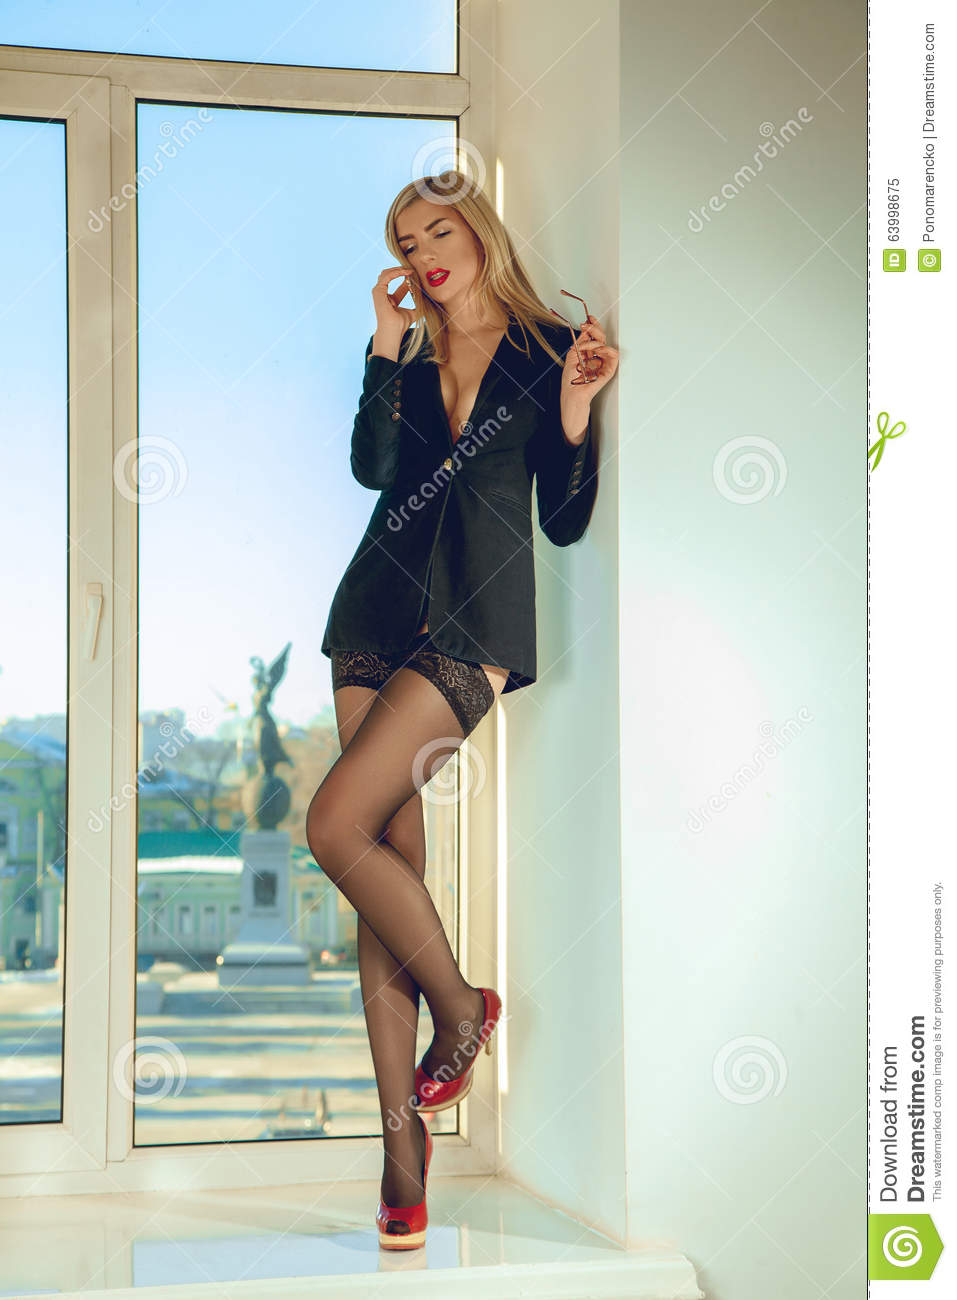 Almost Naked Secretary Talking On The Phone While Standing